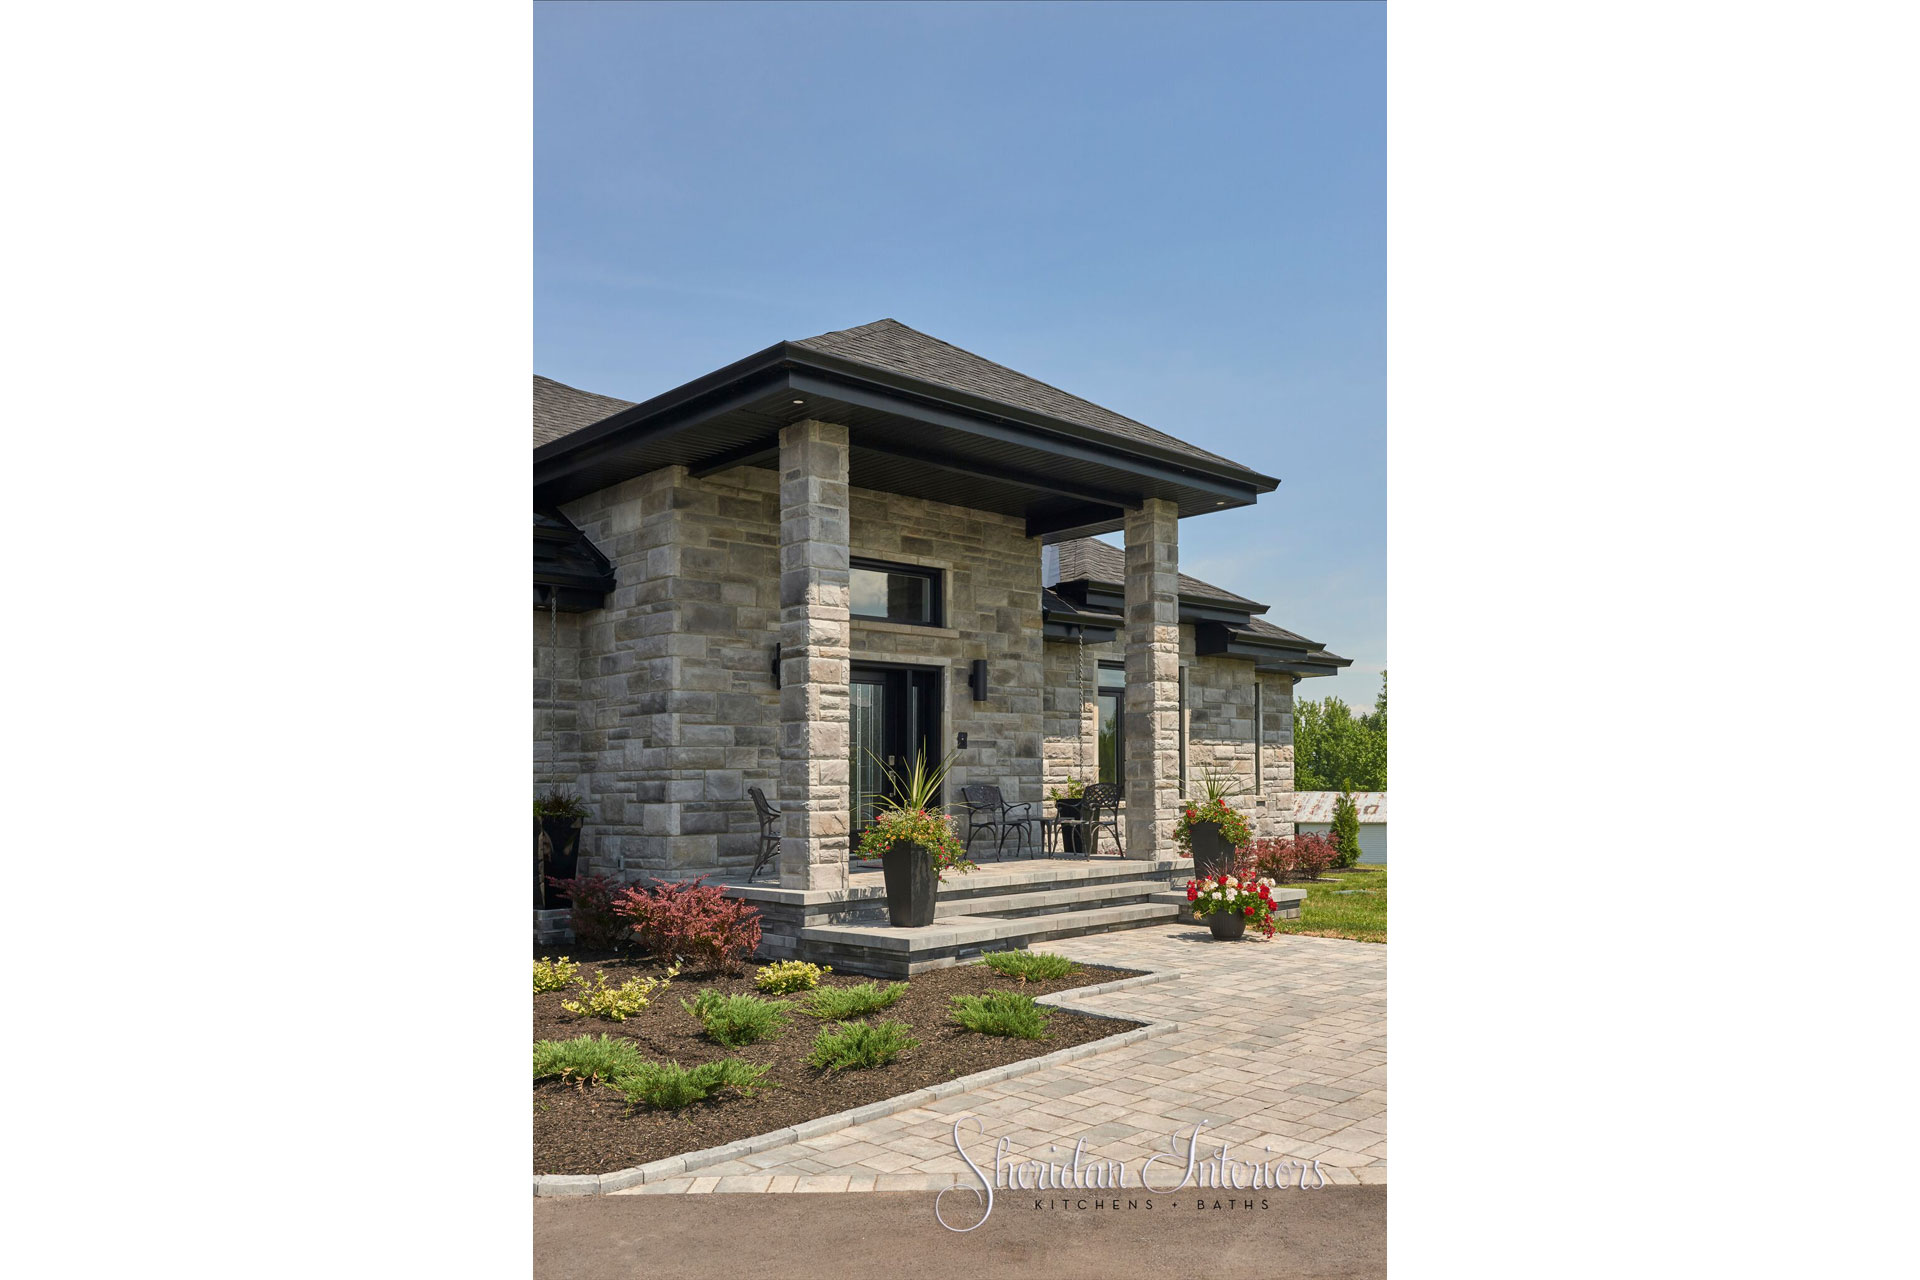 Back-Exterior View - Sheridan Interiors